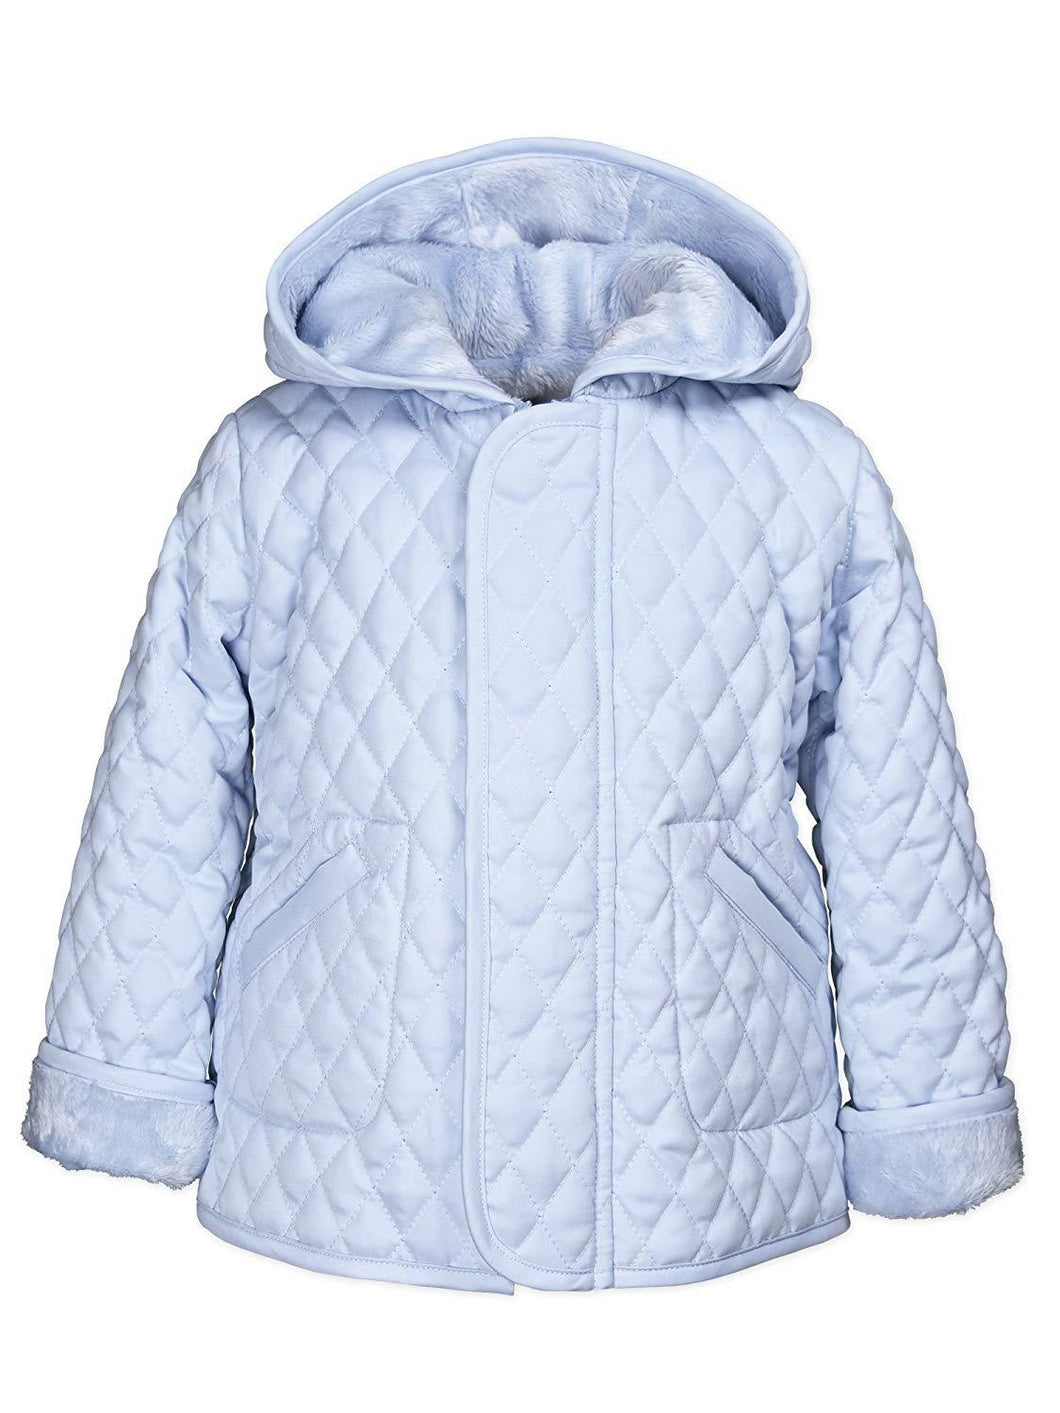 Blue Hooded Barn Jacket - Infant